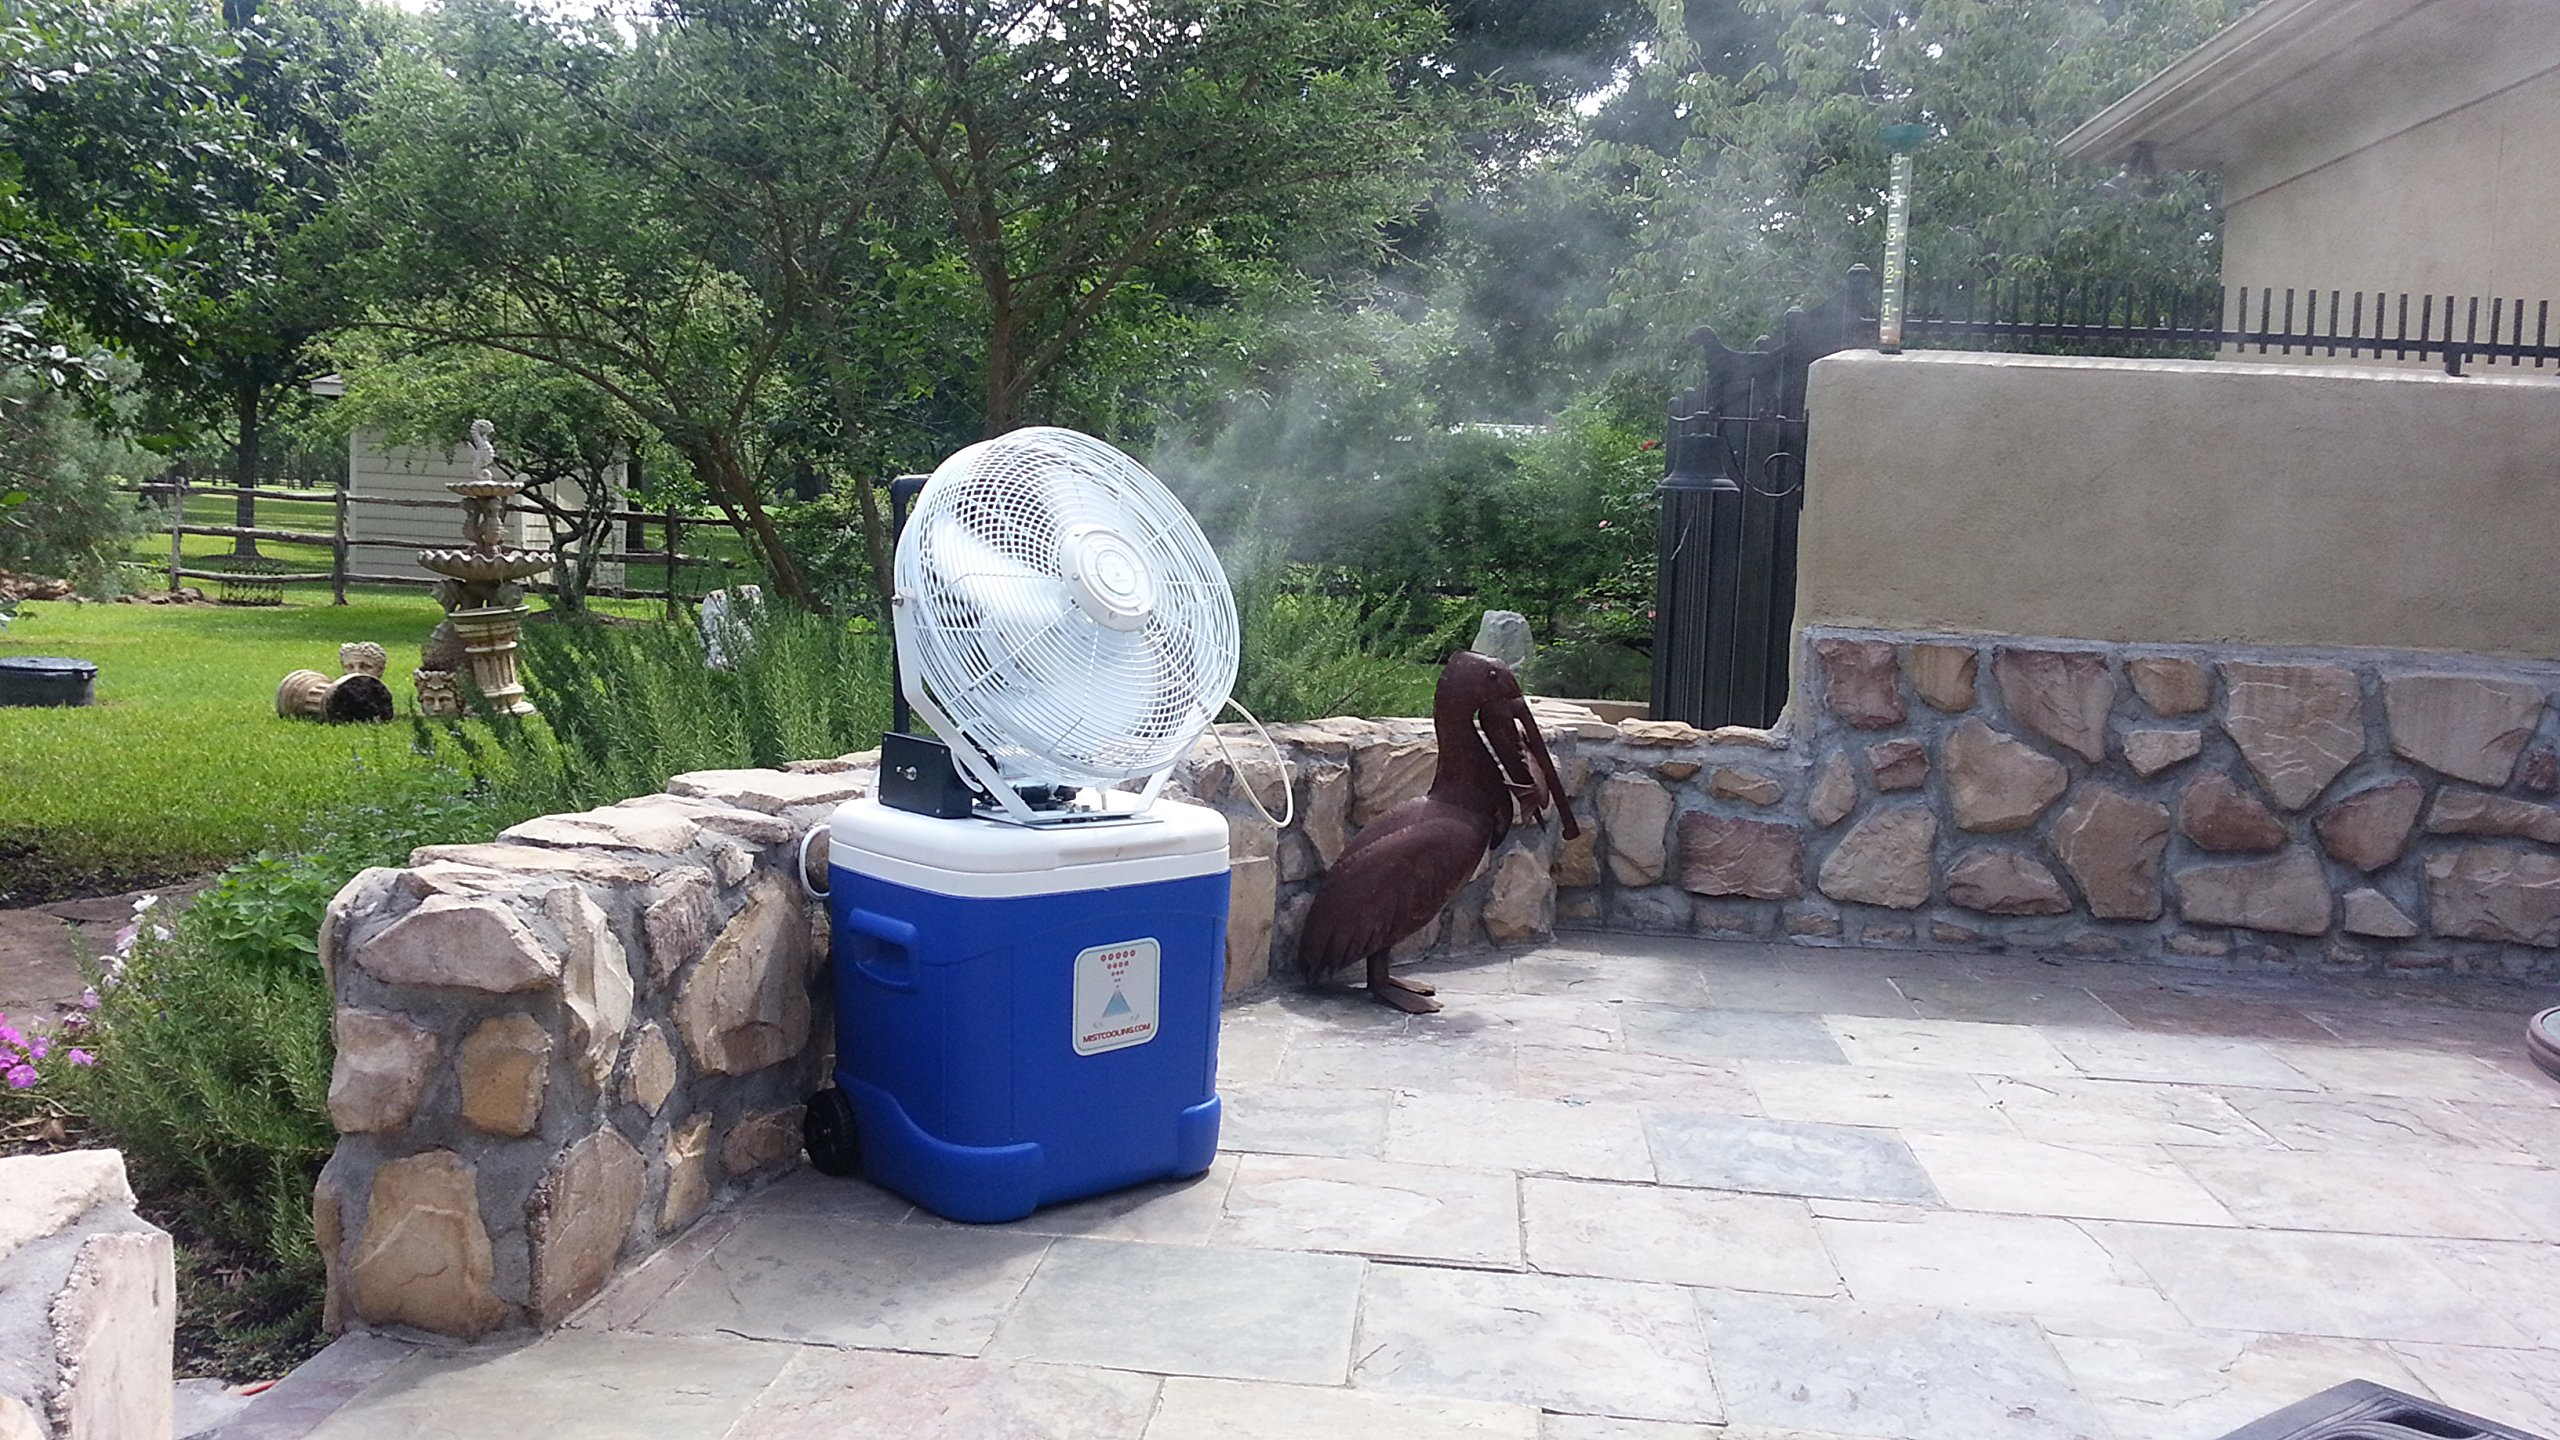 Portable Misting System - Coolermax- 15 Gallon Tank, 14 Inch High Velocity Outdoor Rated Fan - Brass/ Stainless Steel Misting Nozzle - 300 PSI Misting Pump